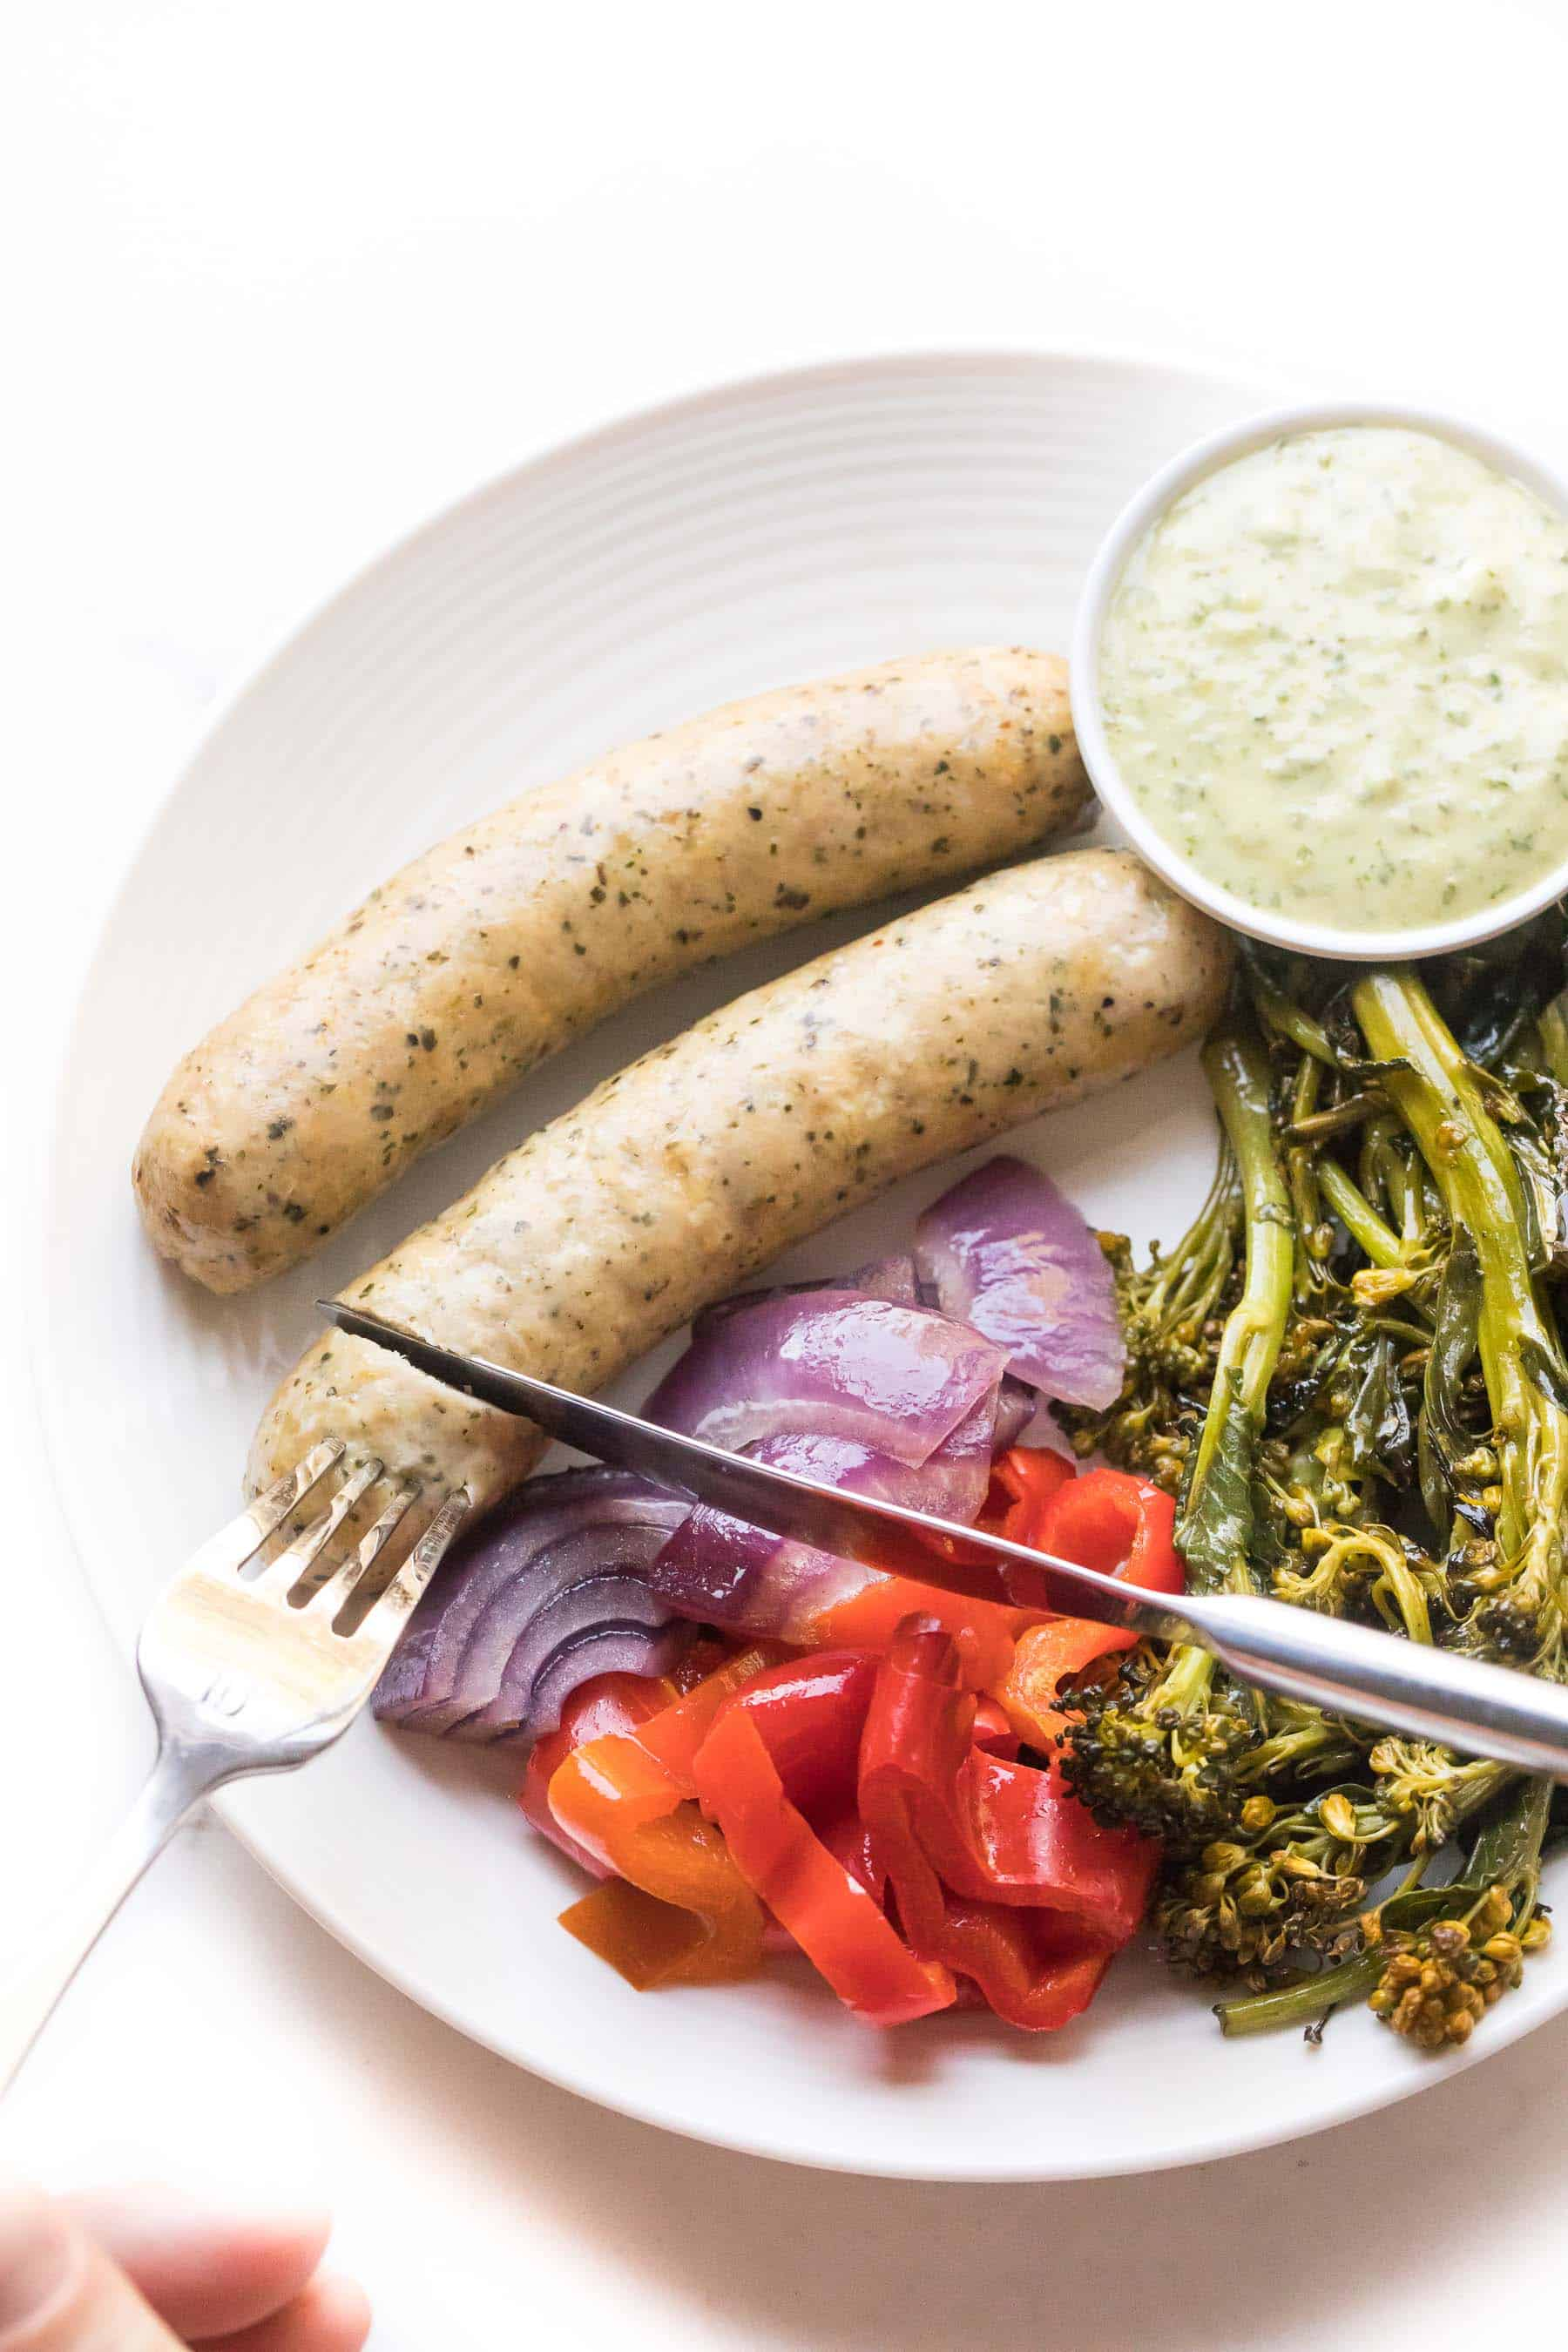 knife cutting sausages and vegetables on a white plate on a white background